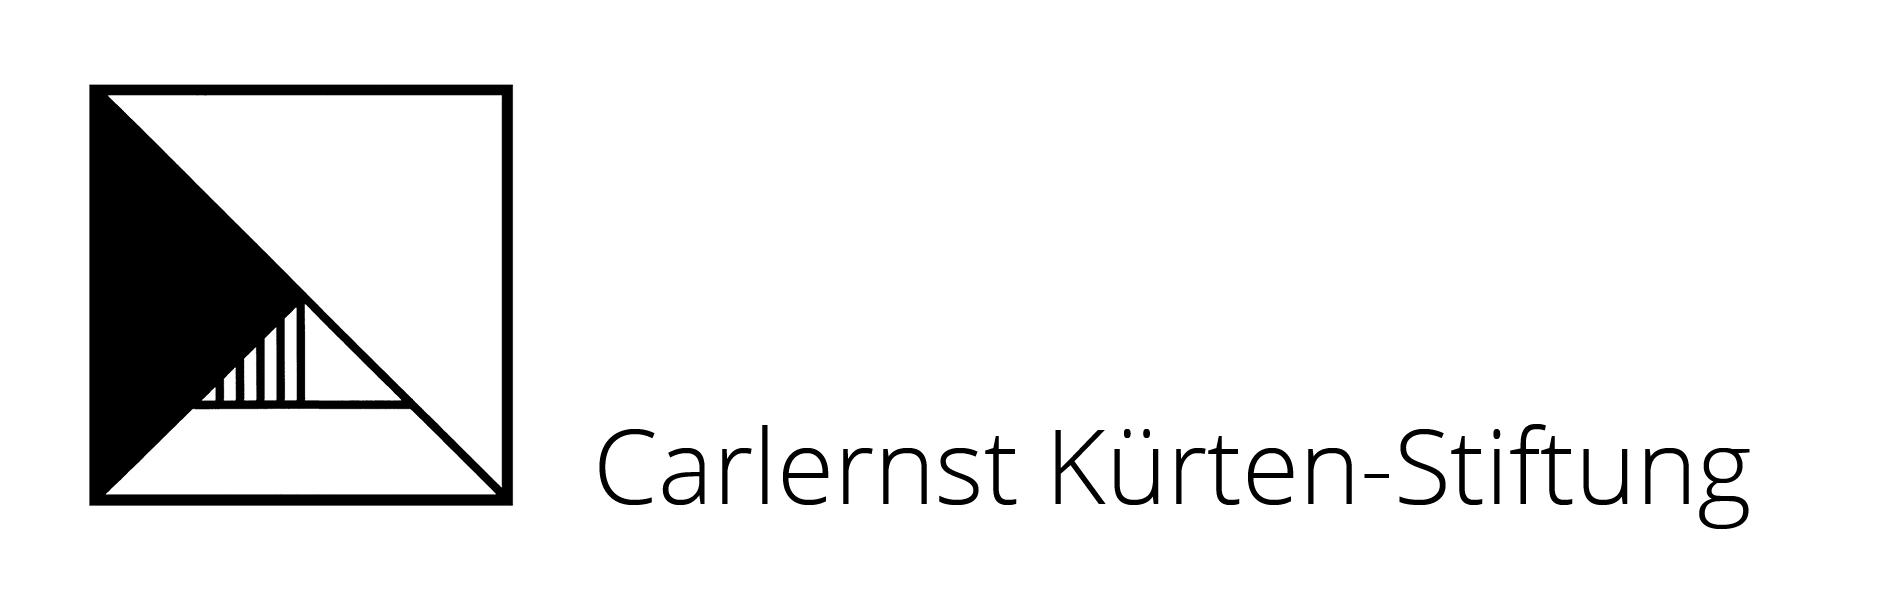 Profile picture for user Carlernst Kürten-Stiftung